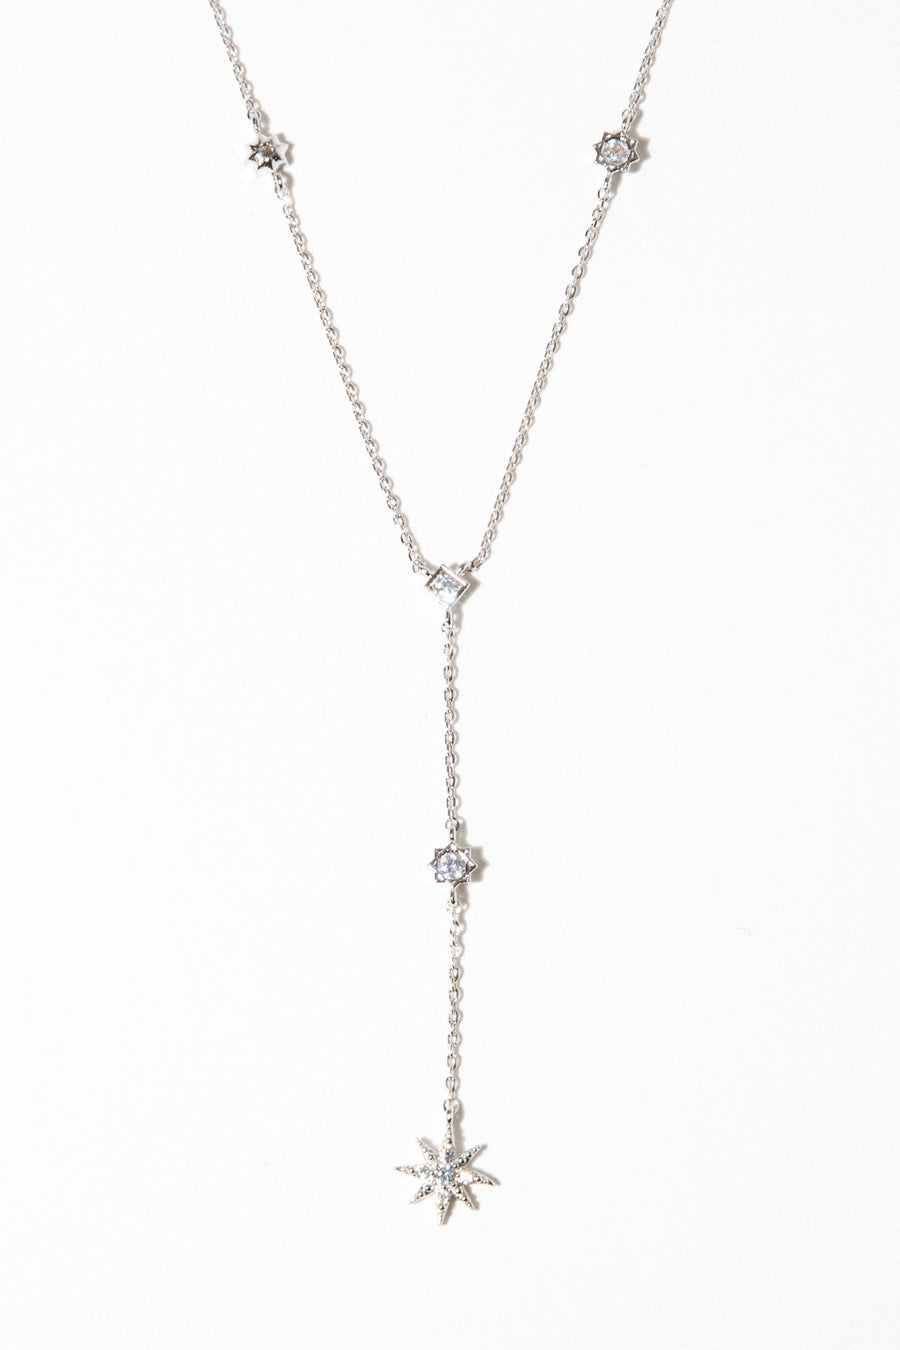 charis Jewelry Silver / 16 Inches Stardust Lariat Necklace